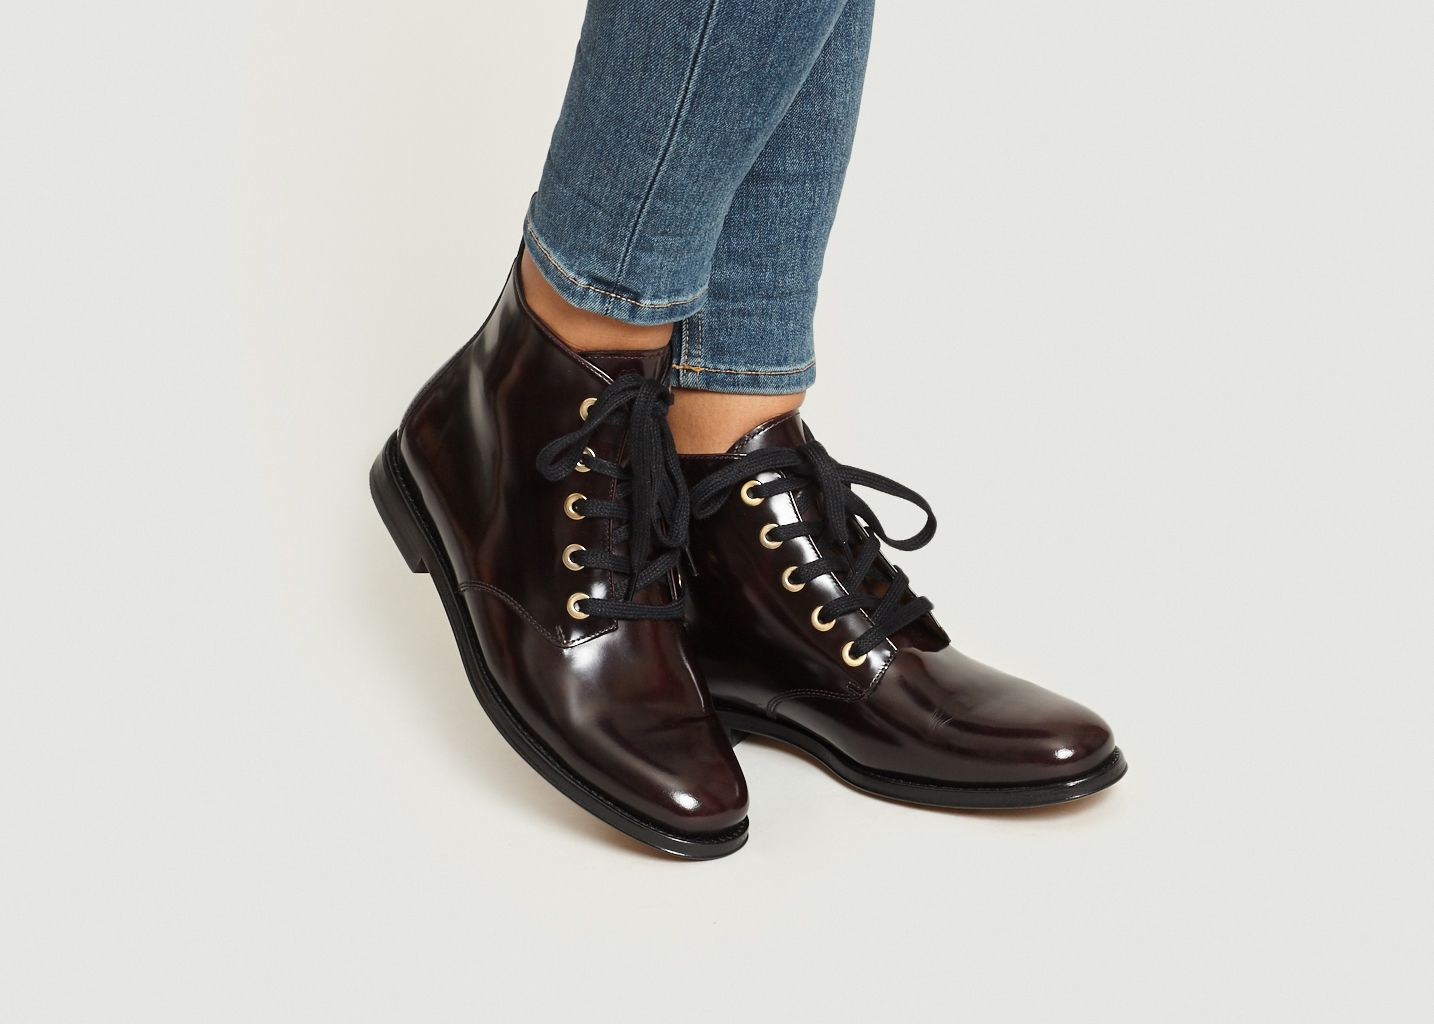 Bottines à Lacets Bordeaux Athé Vanessa Bruno   L Exception 237ca53326fb